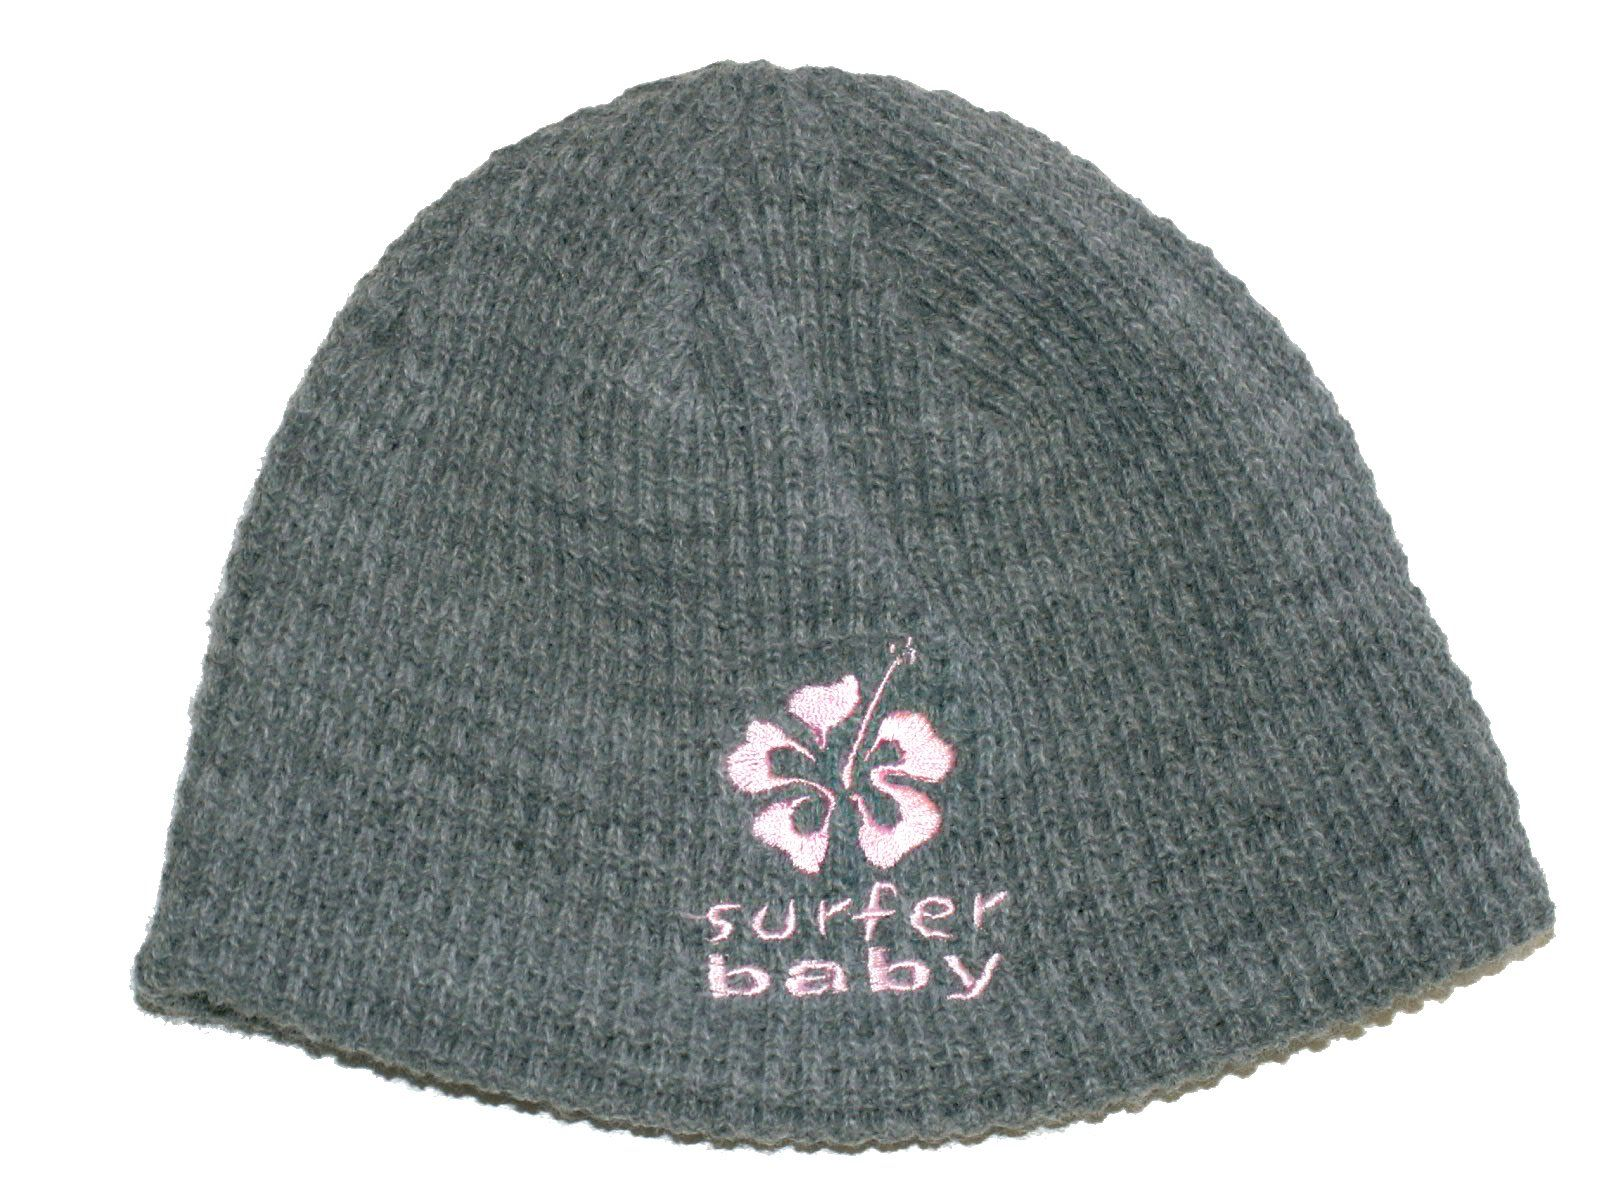 f2303880 Surfer Baby Logo Grey Knit Beanie Hat Skullcap for Toddlers (Pink). Gray  waffle-weave knit with embroidered logo. The toddler size fits  approximately 1-4 ...